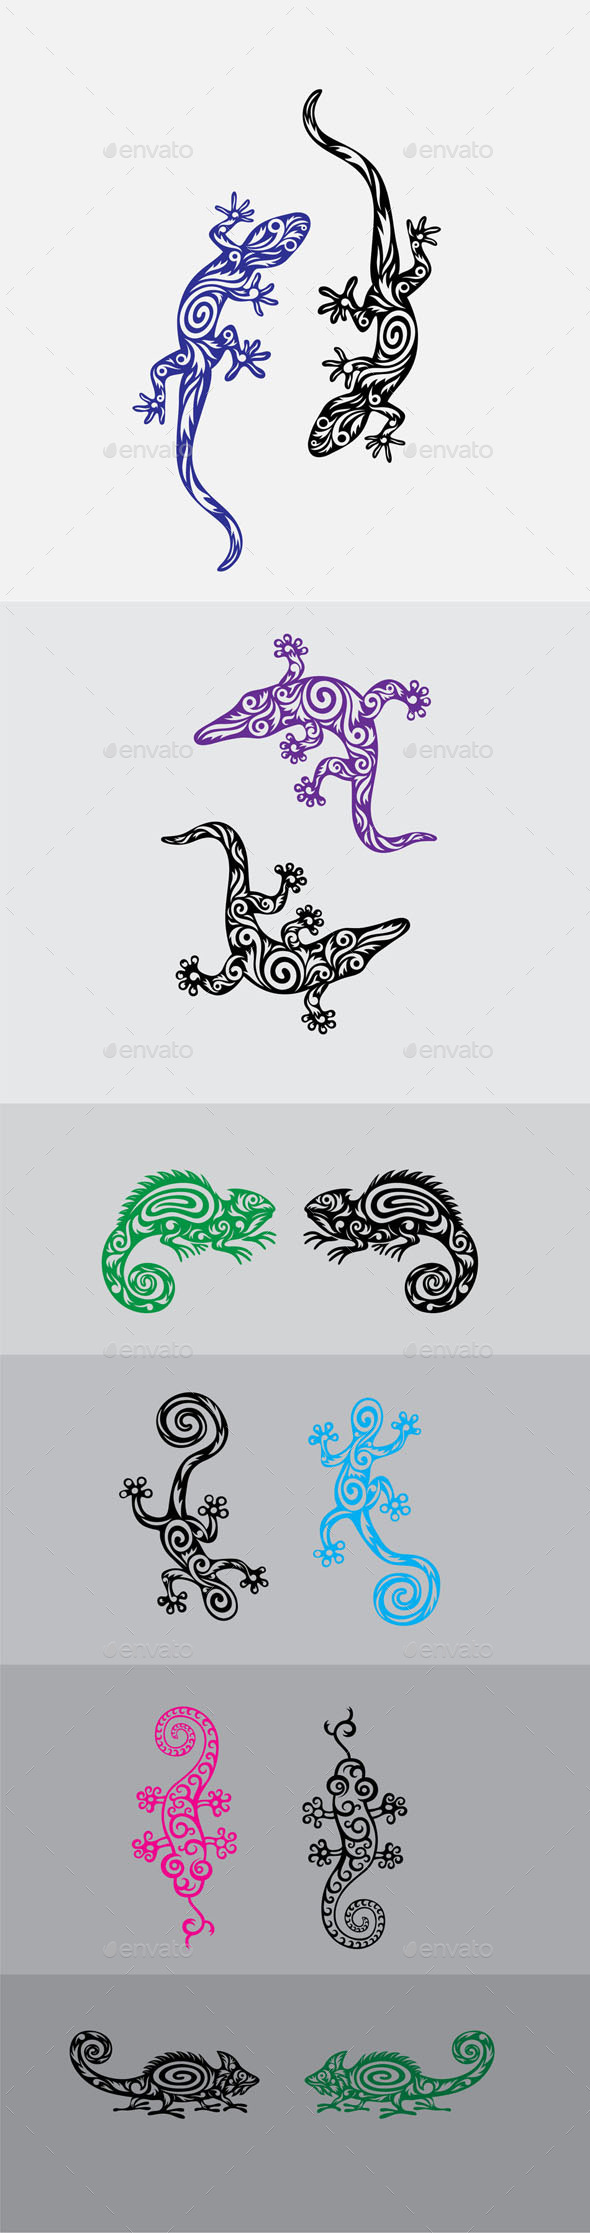 Lizard Ornament Set - Miscellaneous Characters